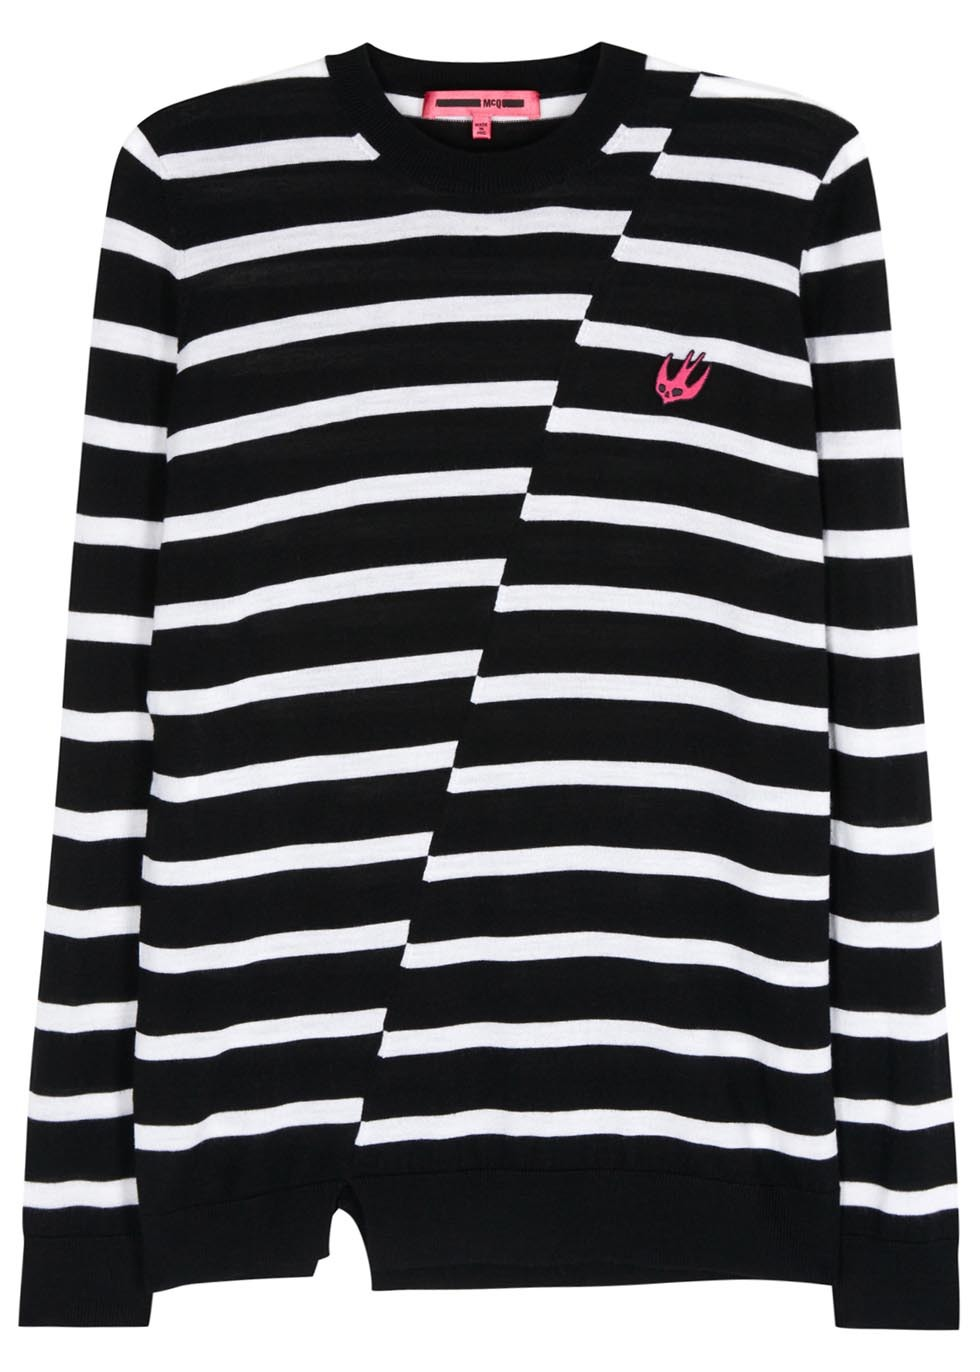 X Tom Tosseyn Striped Wool Jumper - pattern: horizontal stripes; style: standard; secondary colour: white; predominant colour: black; occasions: casual; length: standard; fibres: wool - 100%; fit: standard fit; neckline: crew; sleeve length: long sleeve; sleeve style: standard; texture group: knits/crochet; pattern type: fabric; multicoloured: multicoloured; season: s/s 2016; wardrobe: highlight